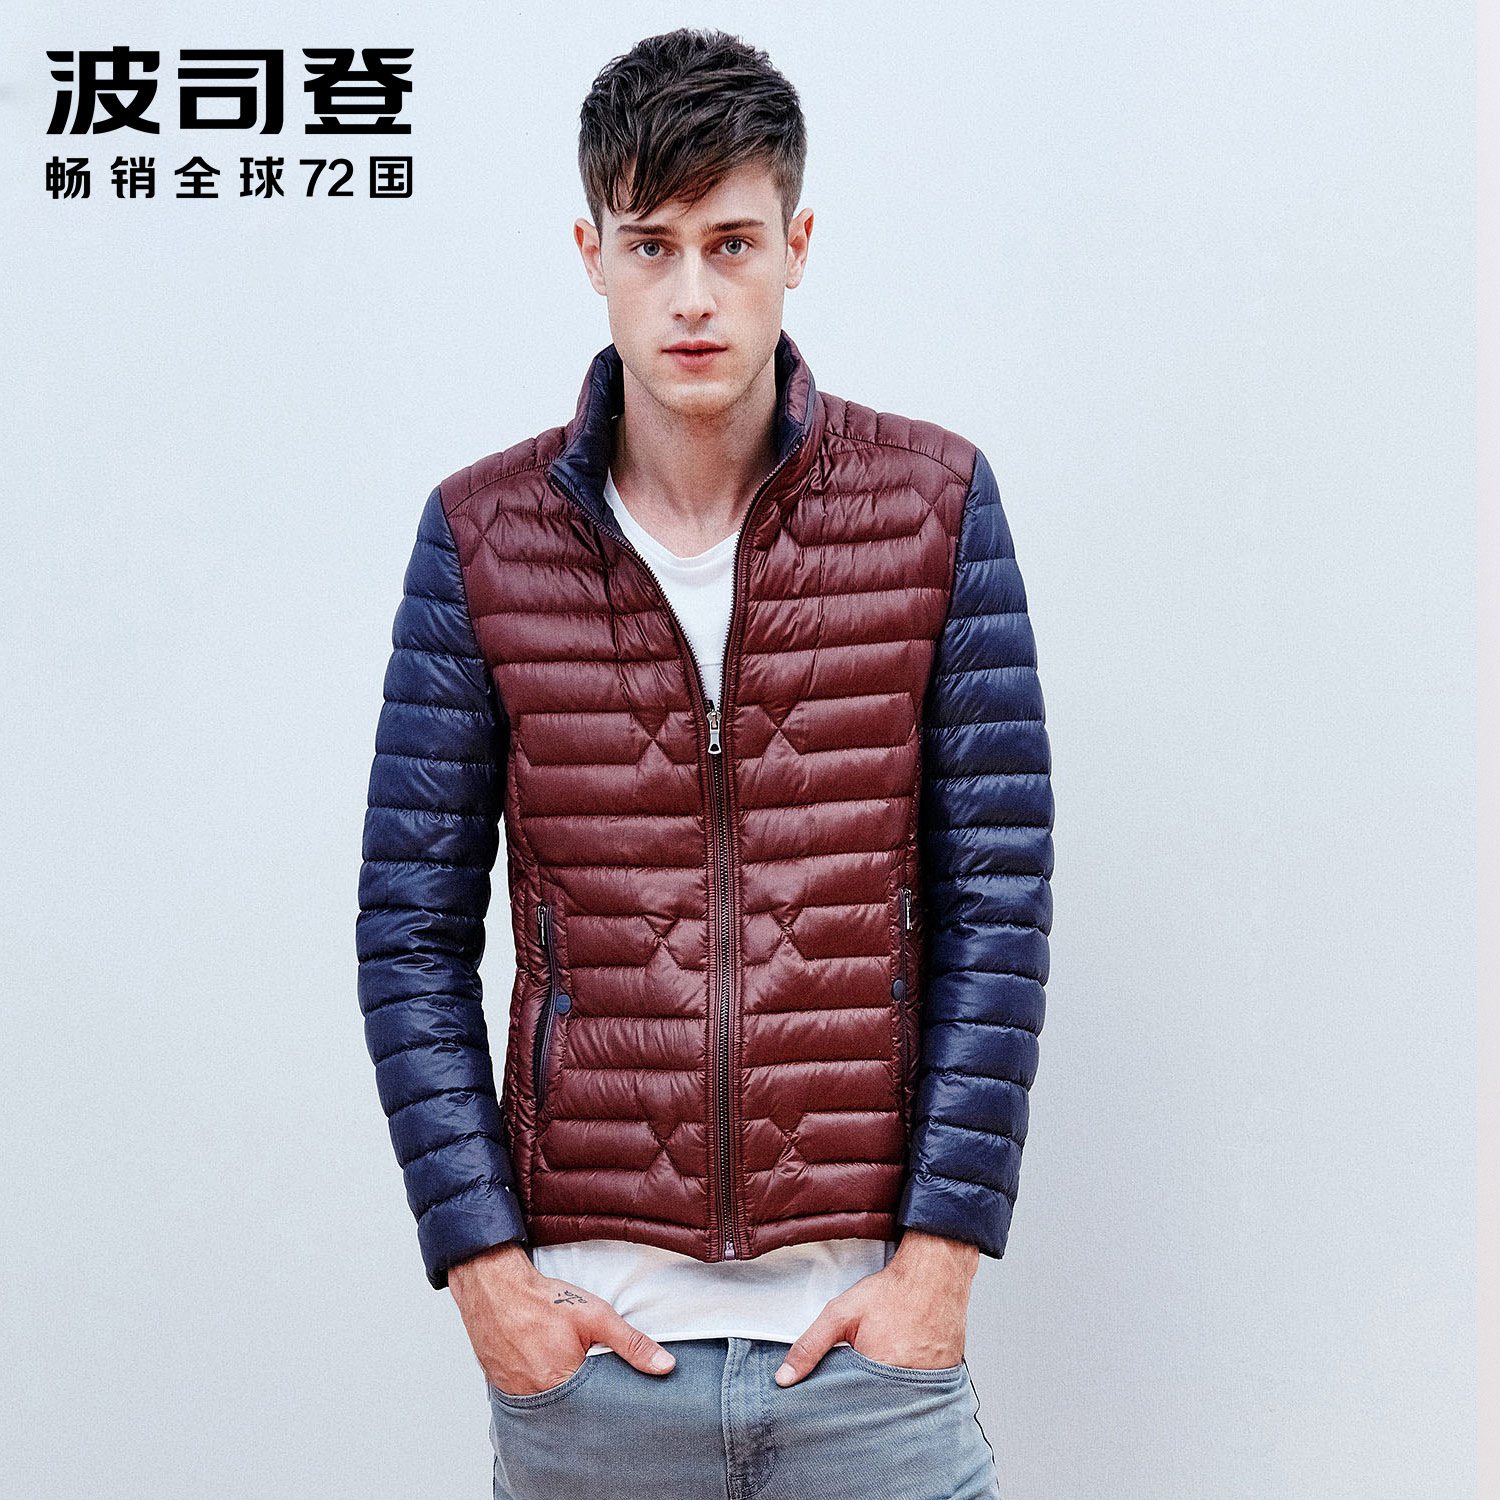 88fb7124d51 Bosideng spring and autumn Korean casual fashion men hit color down jacket  winter slim jacket warm B1501035